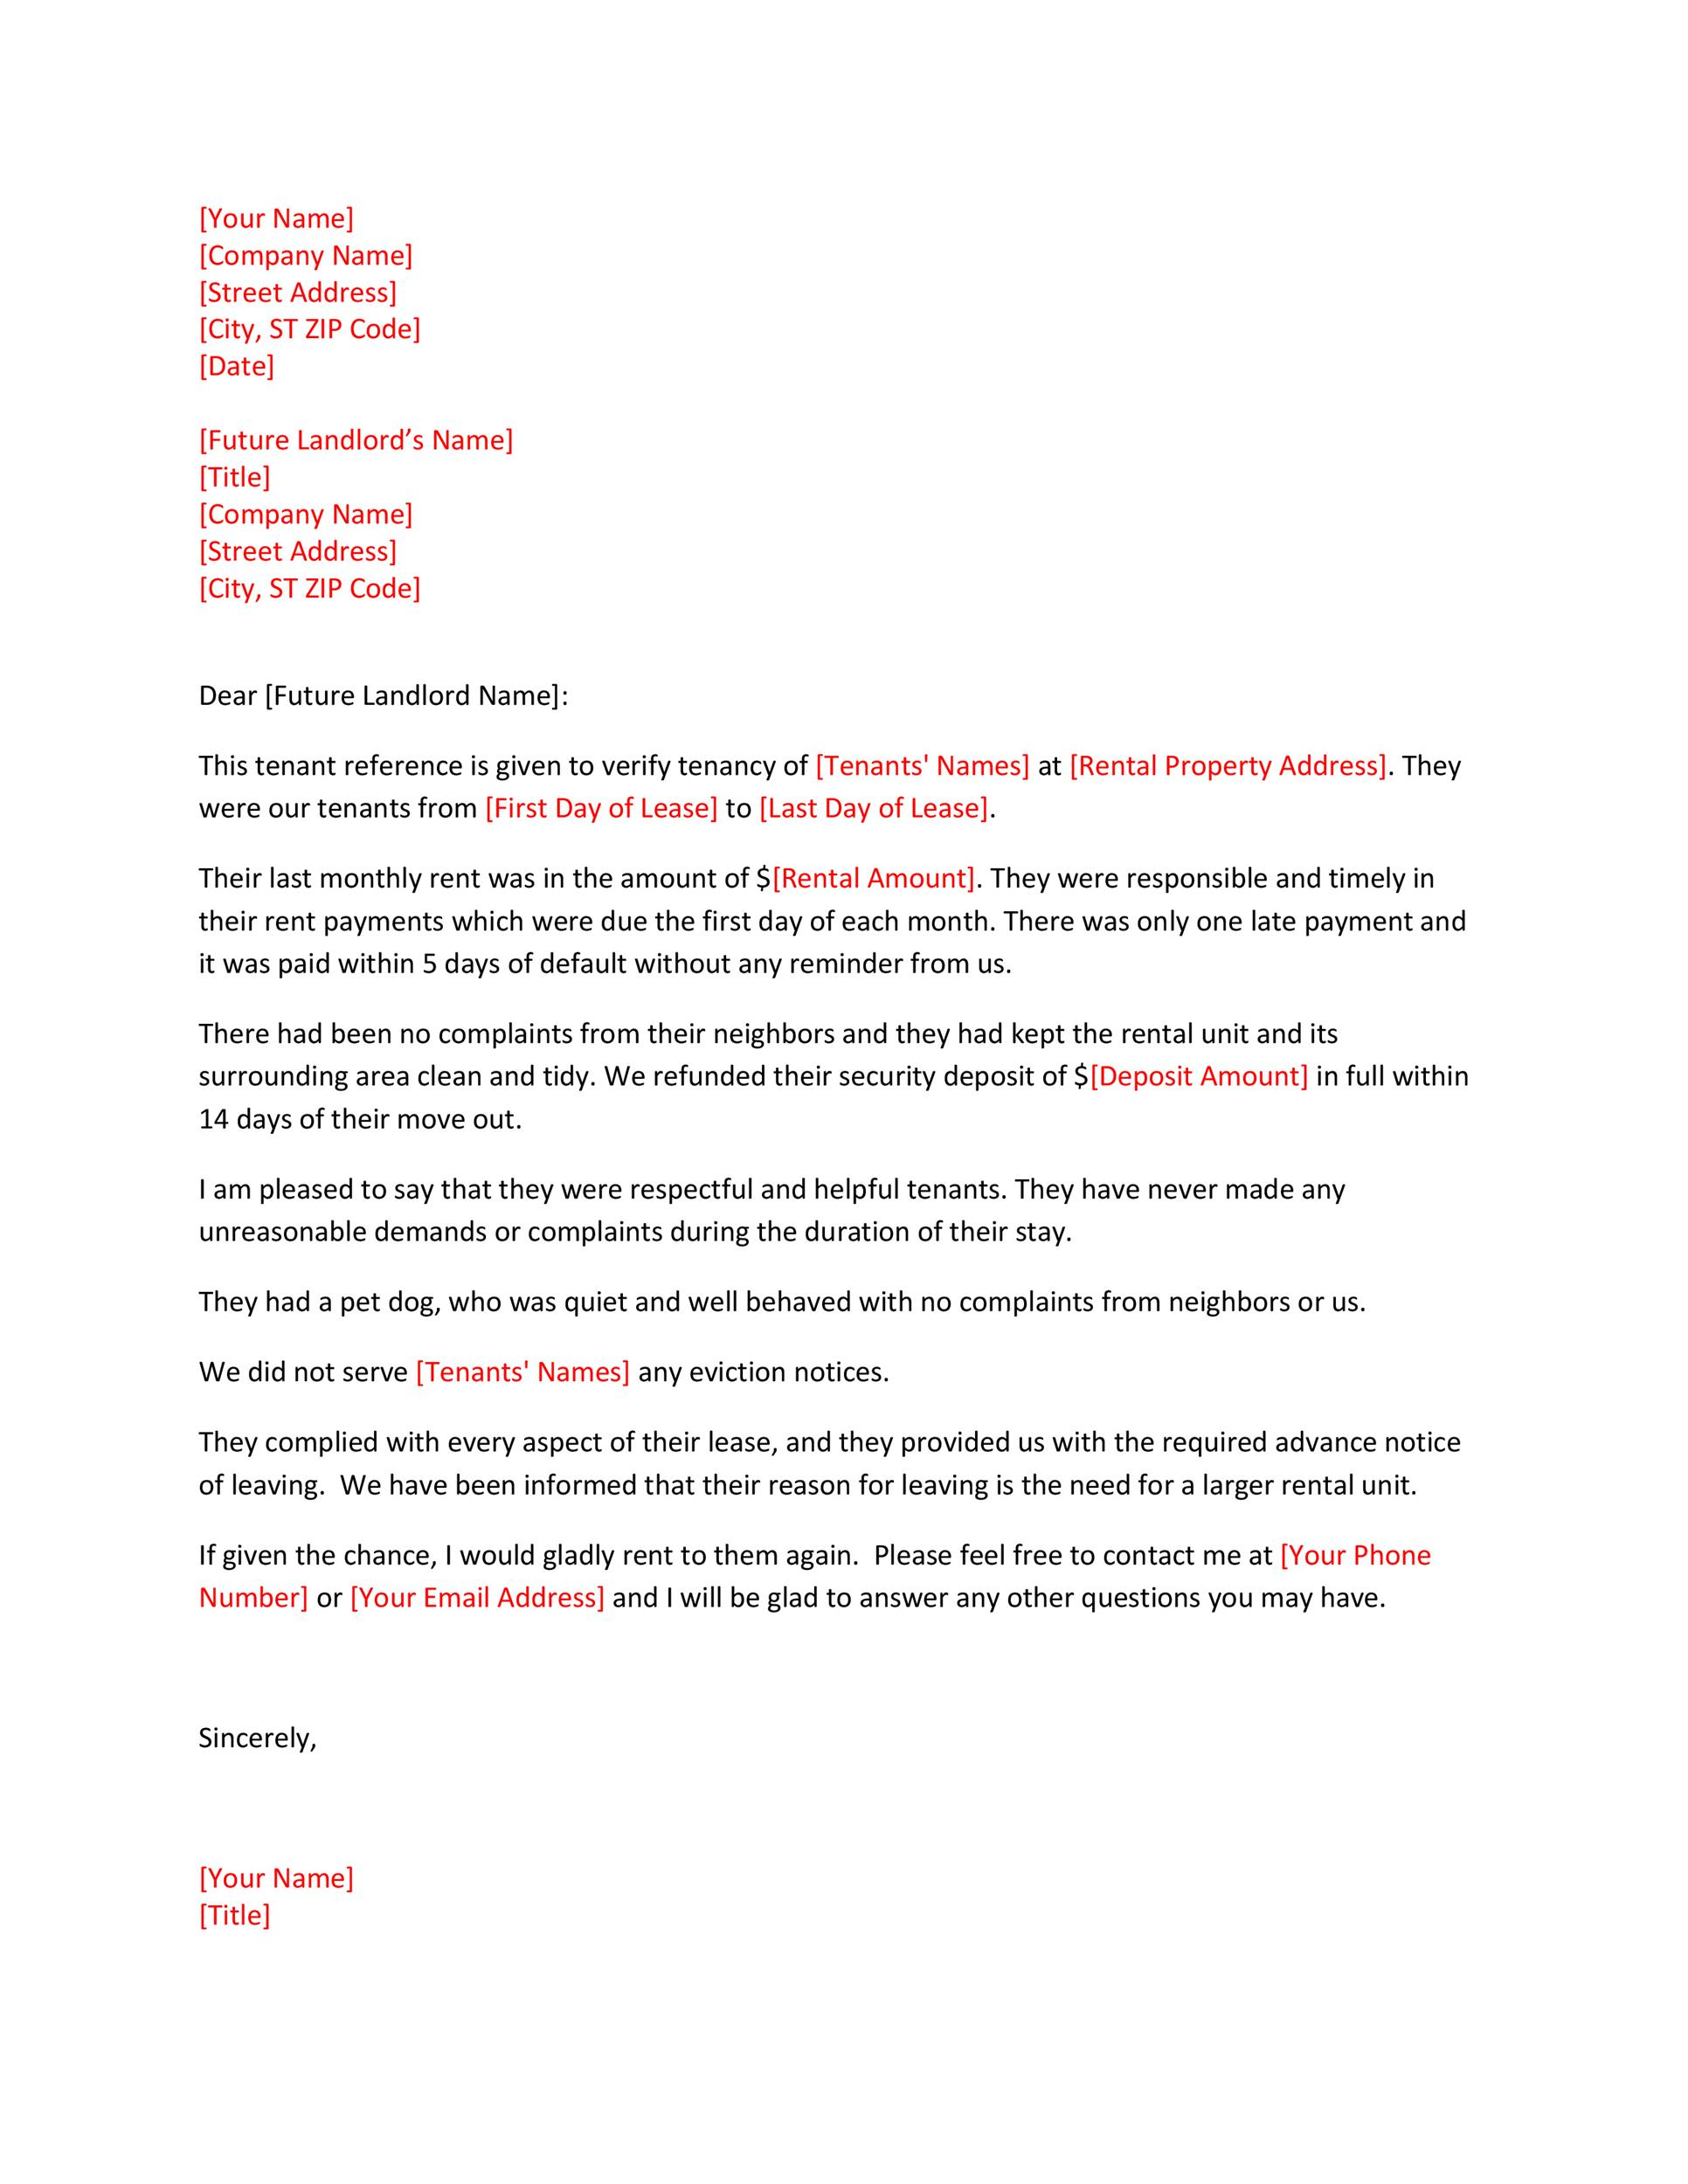 Free landlord reference letter 32